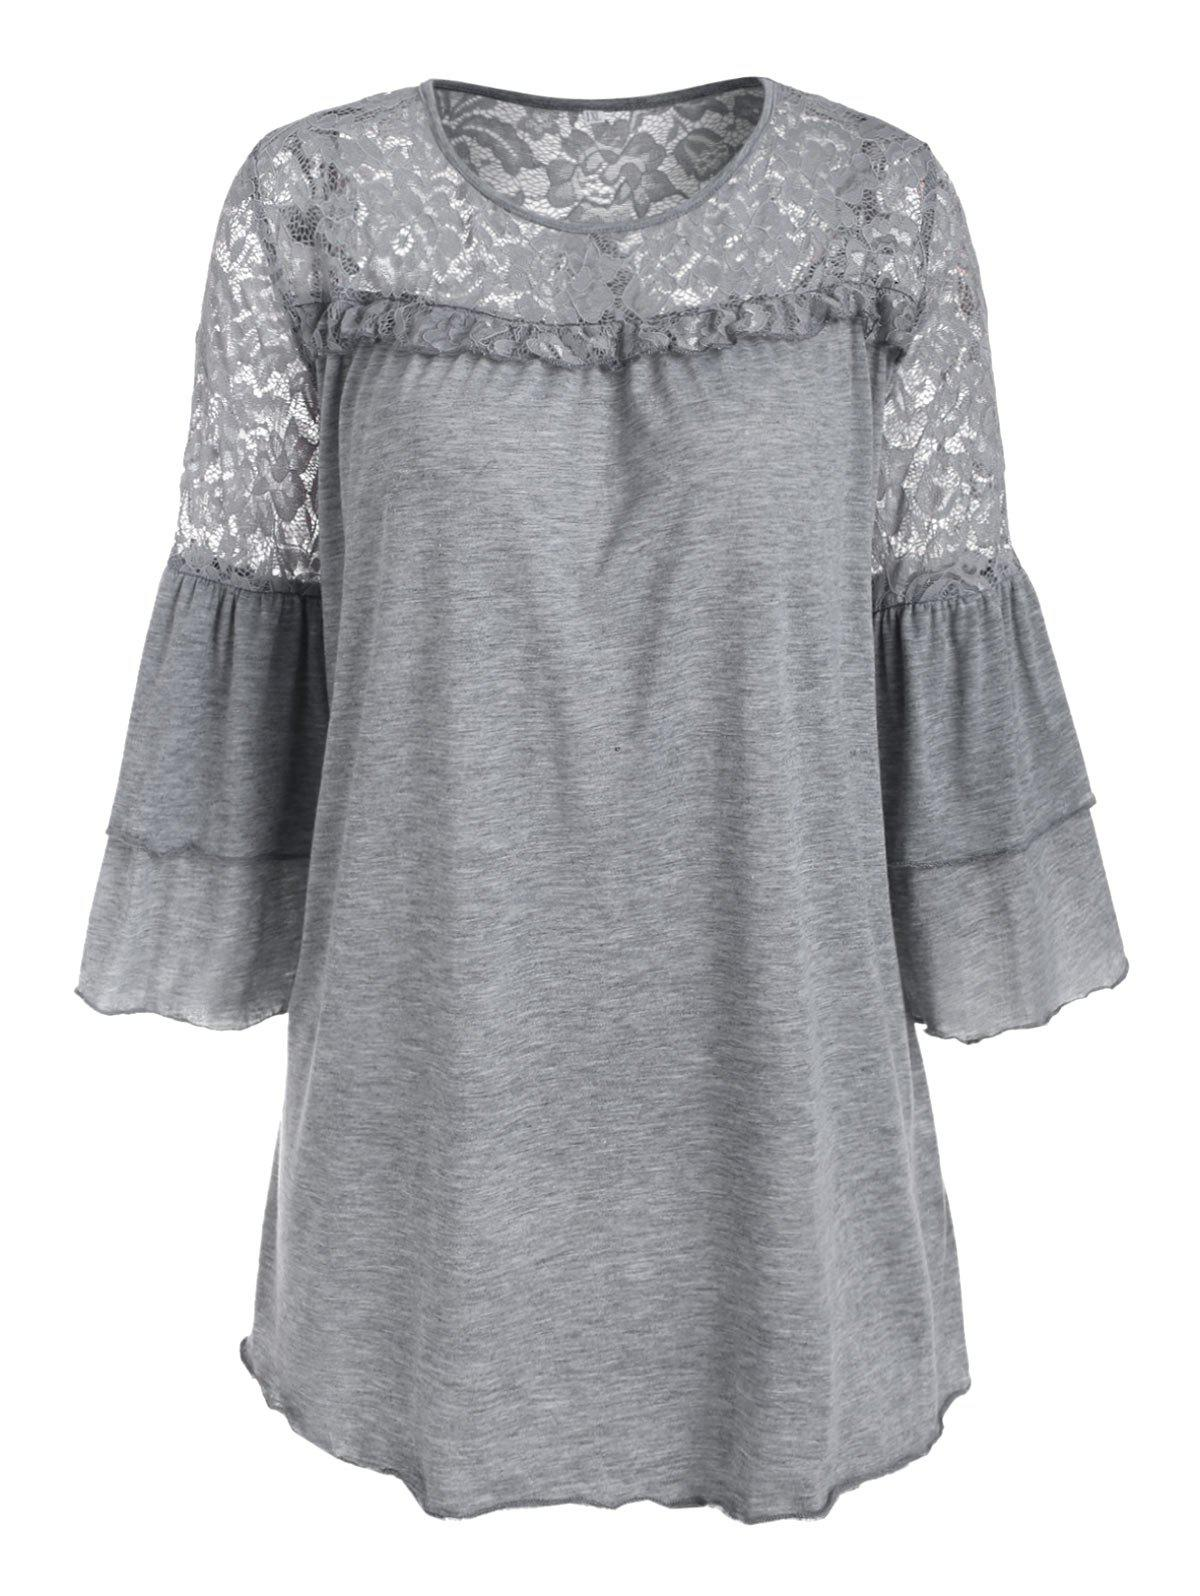 Lace Panel Marled Lettuce Trim Layered Sleeve Plus Size Top - LIGHT GRAY 4XL